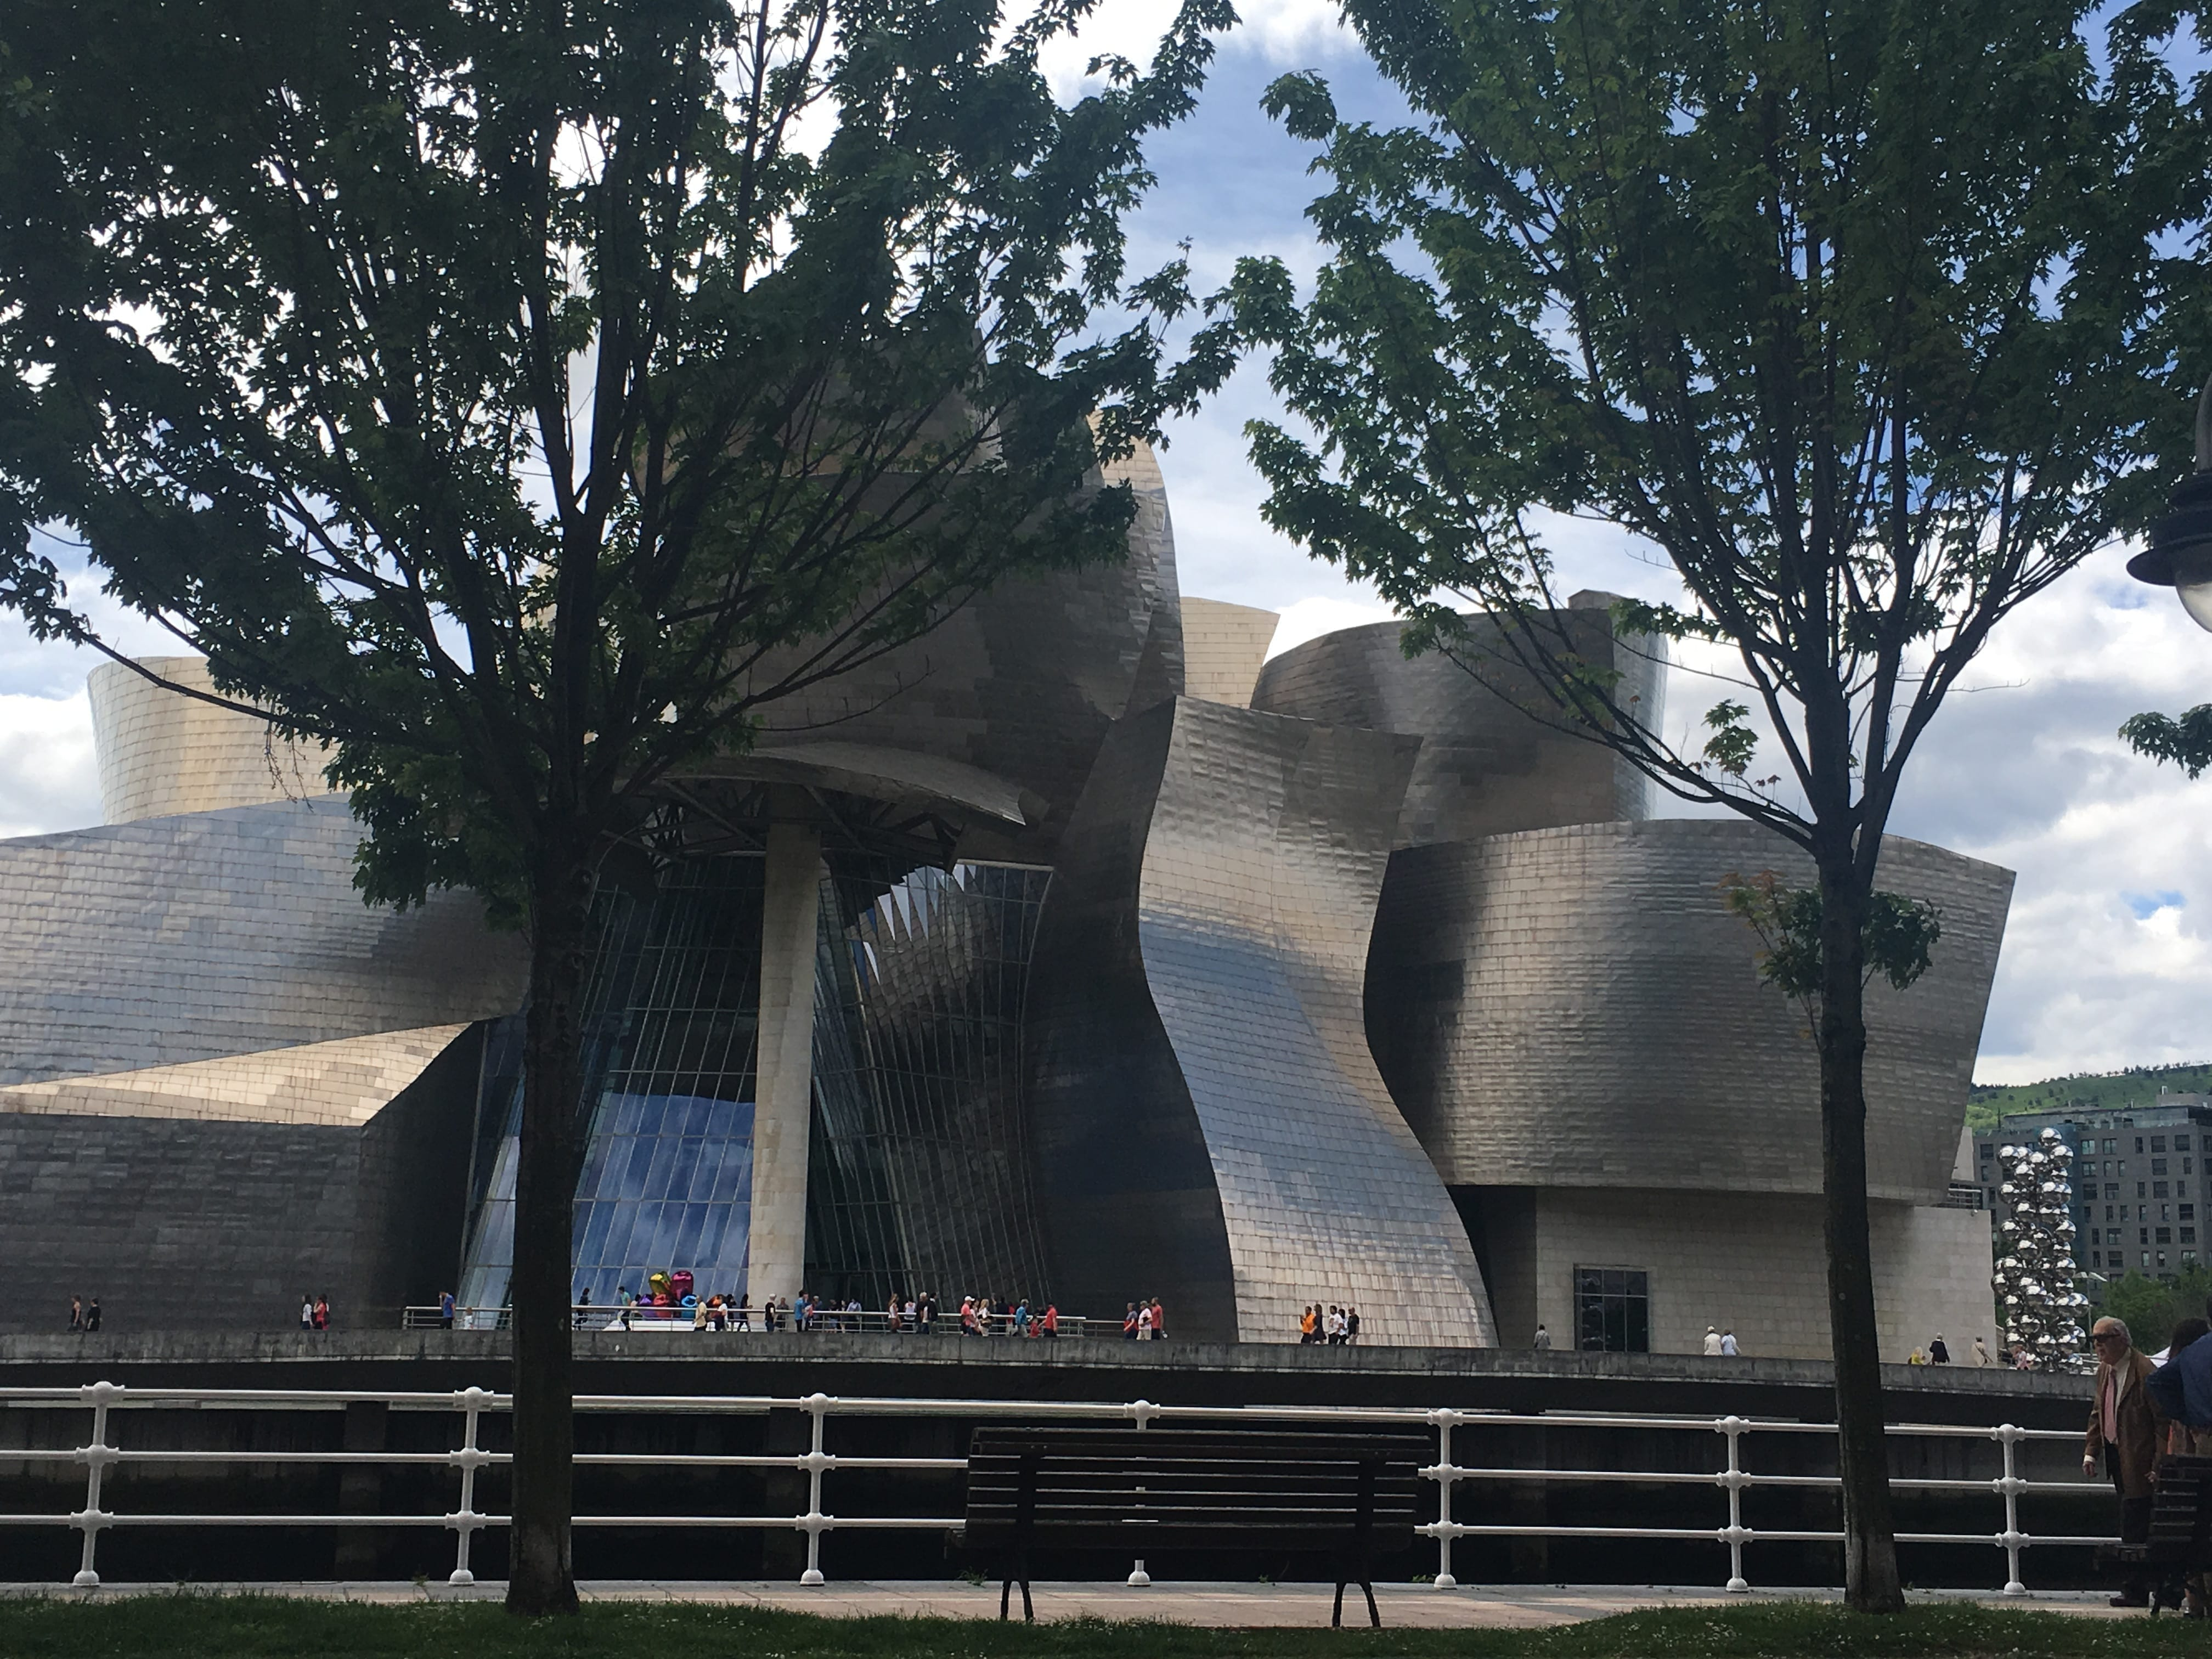 bilbao, see in bilbao, places to visit in bilbao, church of san nicolas, banks of the estuary